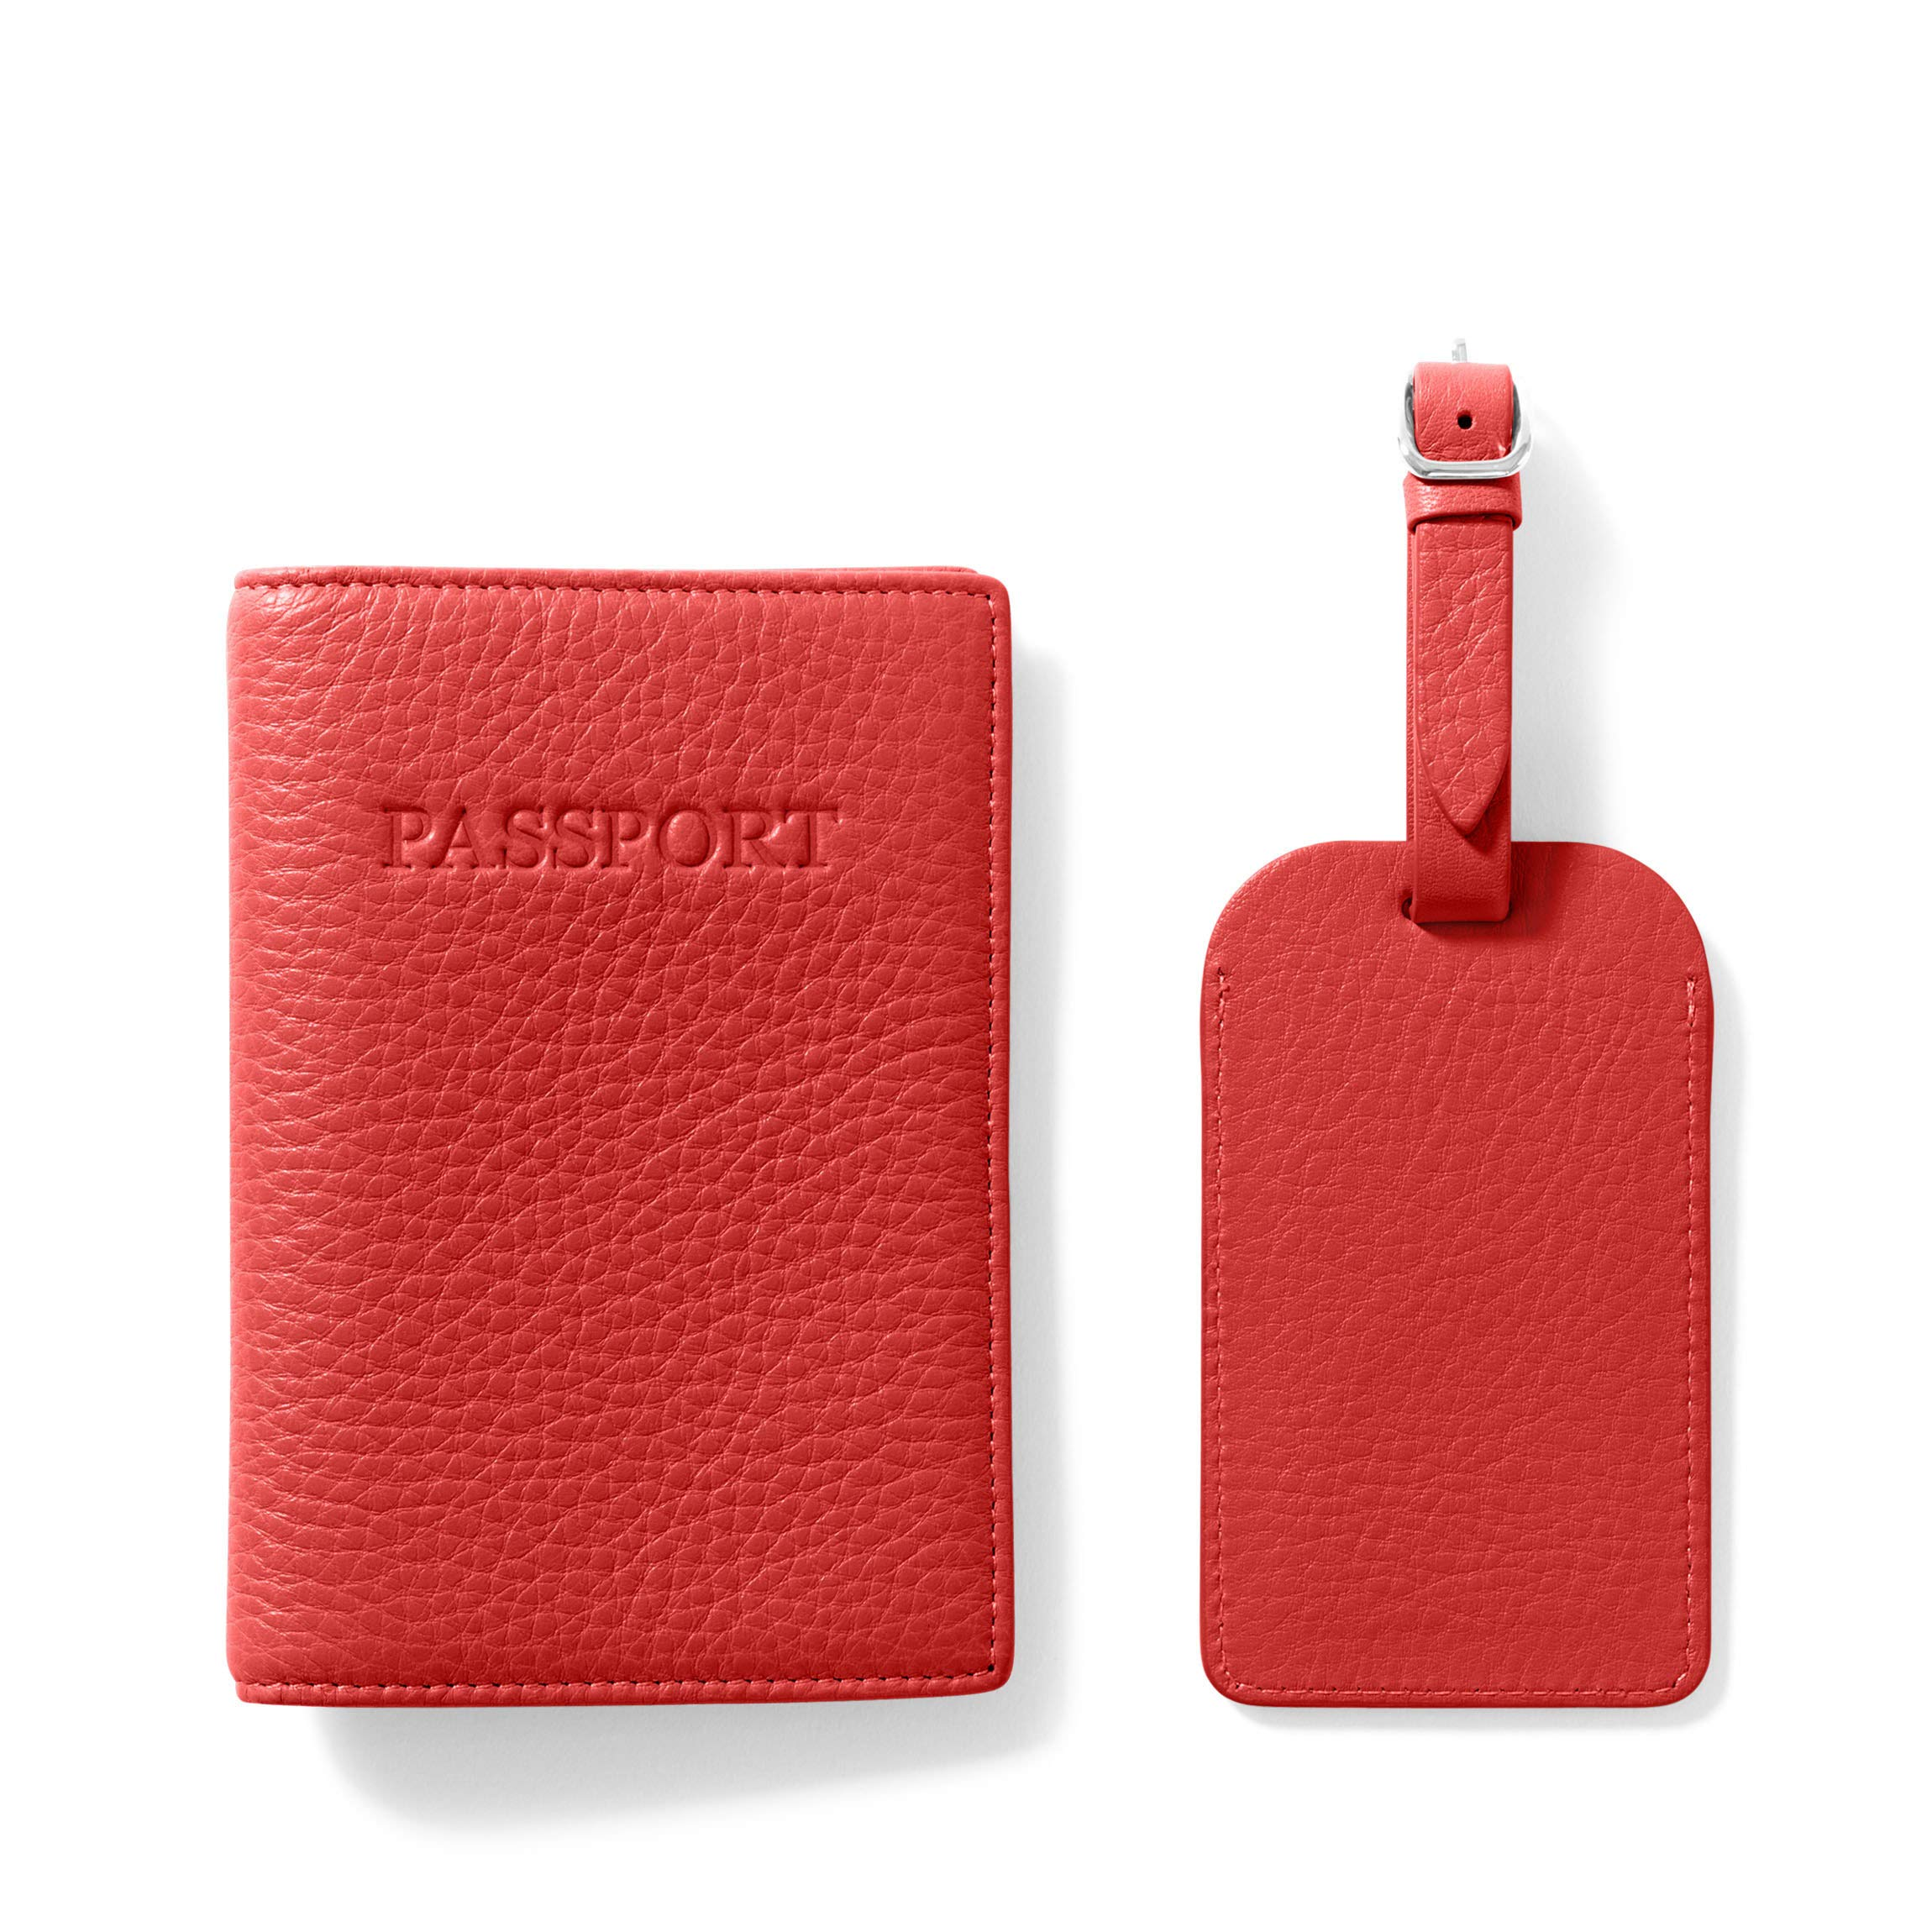 Leatherology Scarlet Passport Cover + Luggage Tag by Leatherology